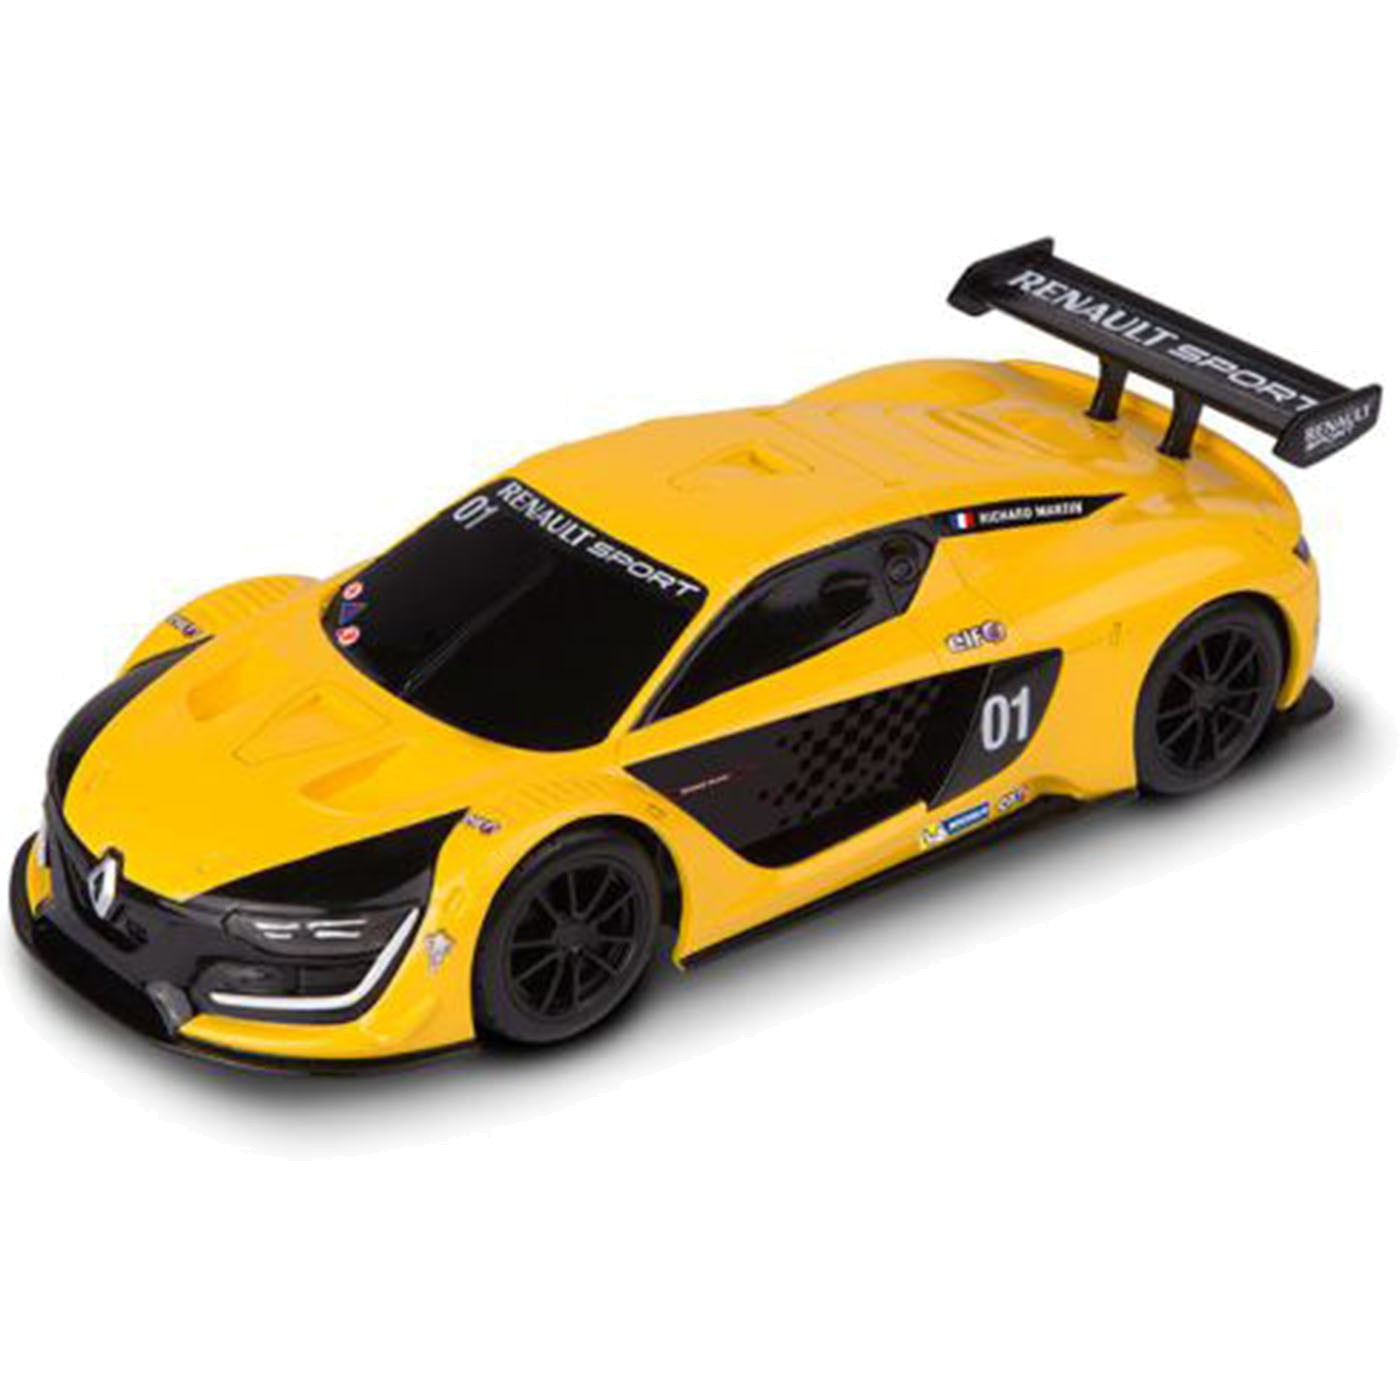 RENAULT R.S 01 YELLOW